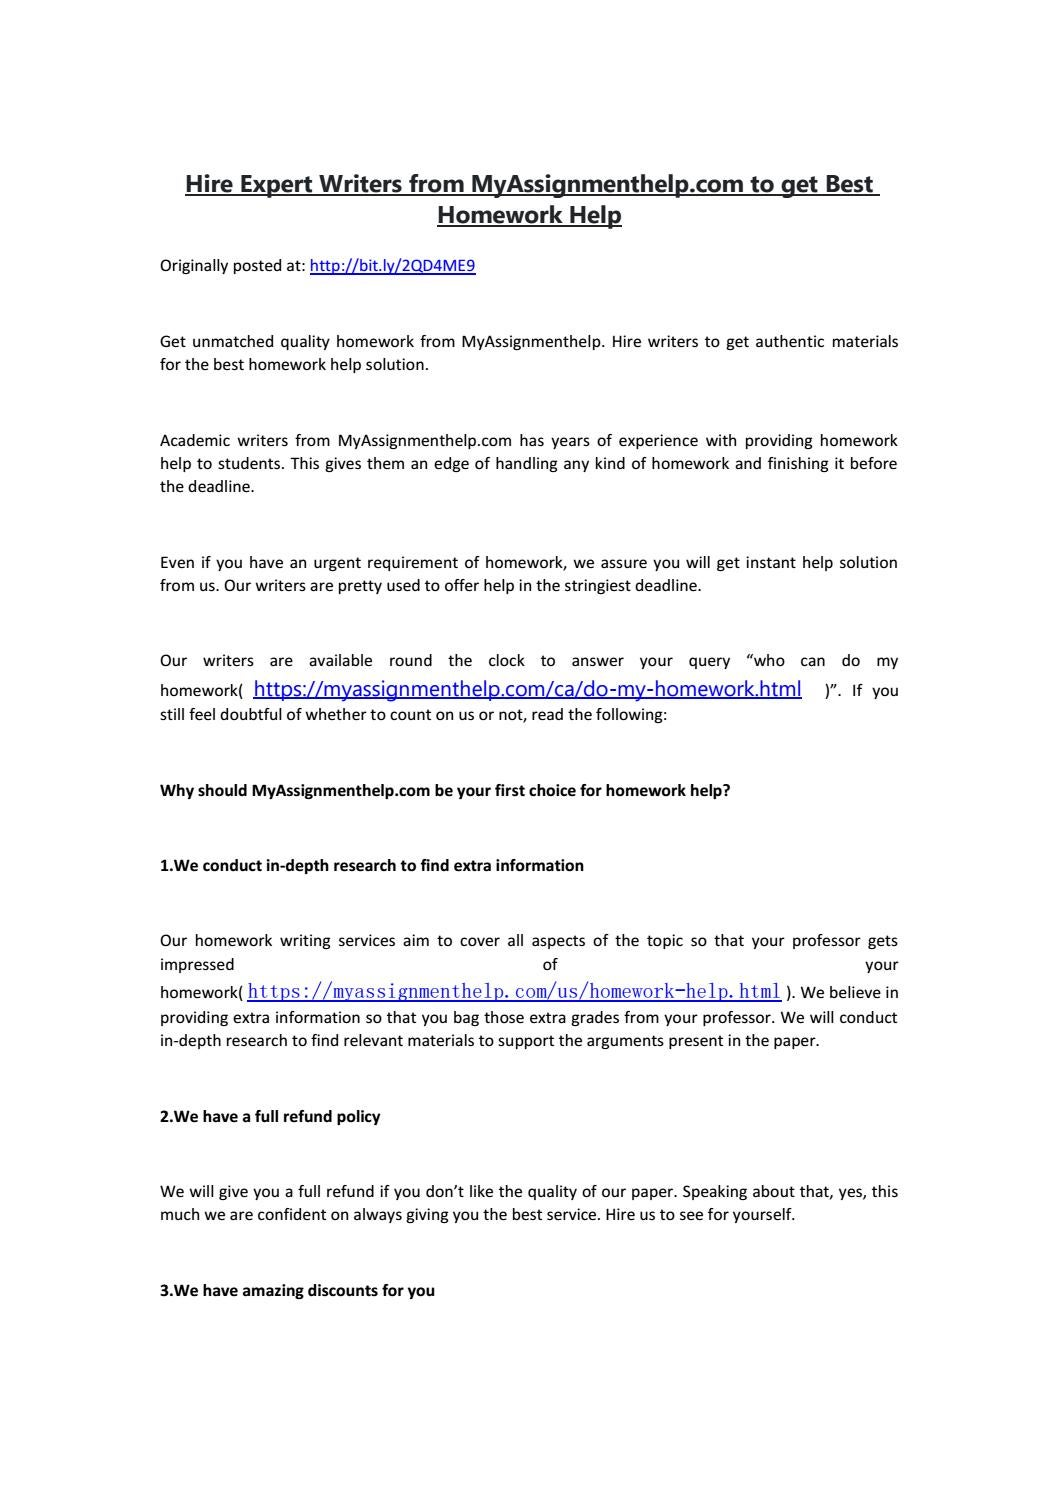 Home work writing for hire college example graduate resume